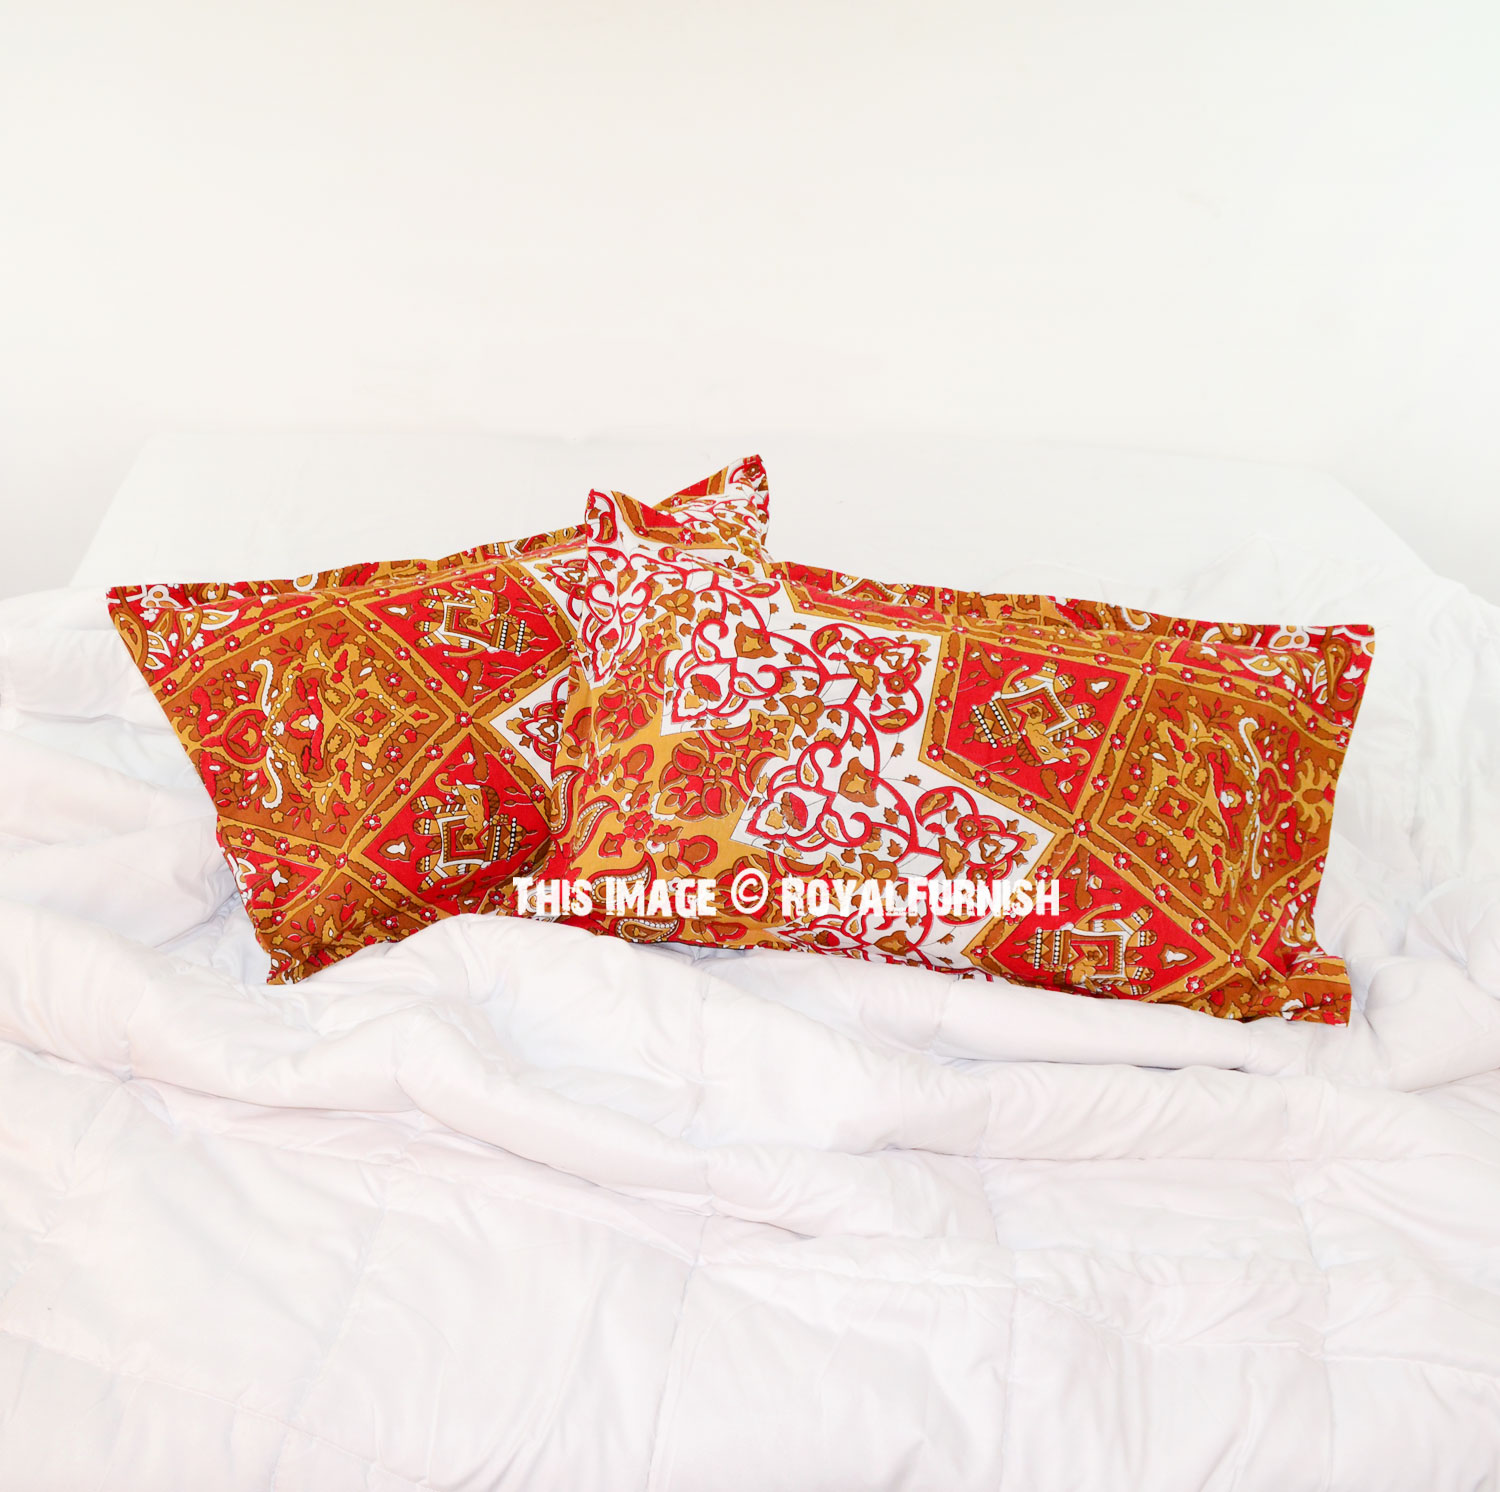 Red Throw Pillow For Bed : Red Yellow Multi 3D Boho Star Medallion Bed Pillow Covers Set of Two - RoyalFurnish.com